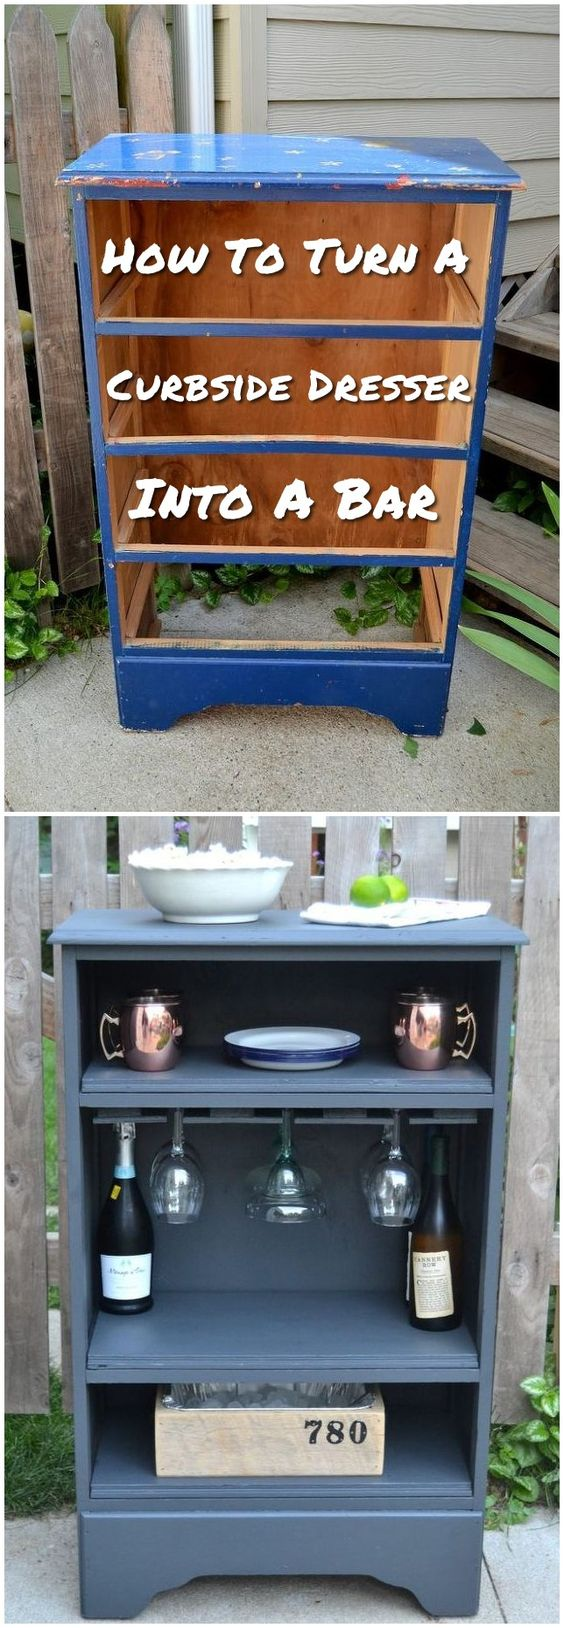 Turn A Curbside Dresser Into A Bar.